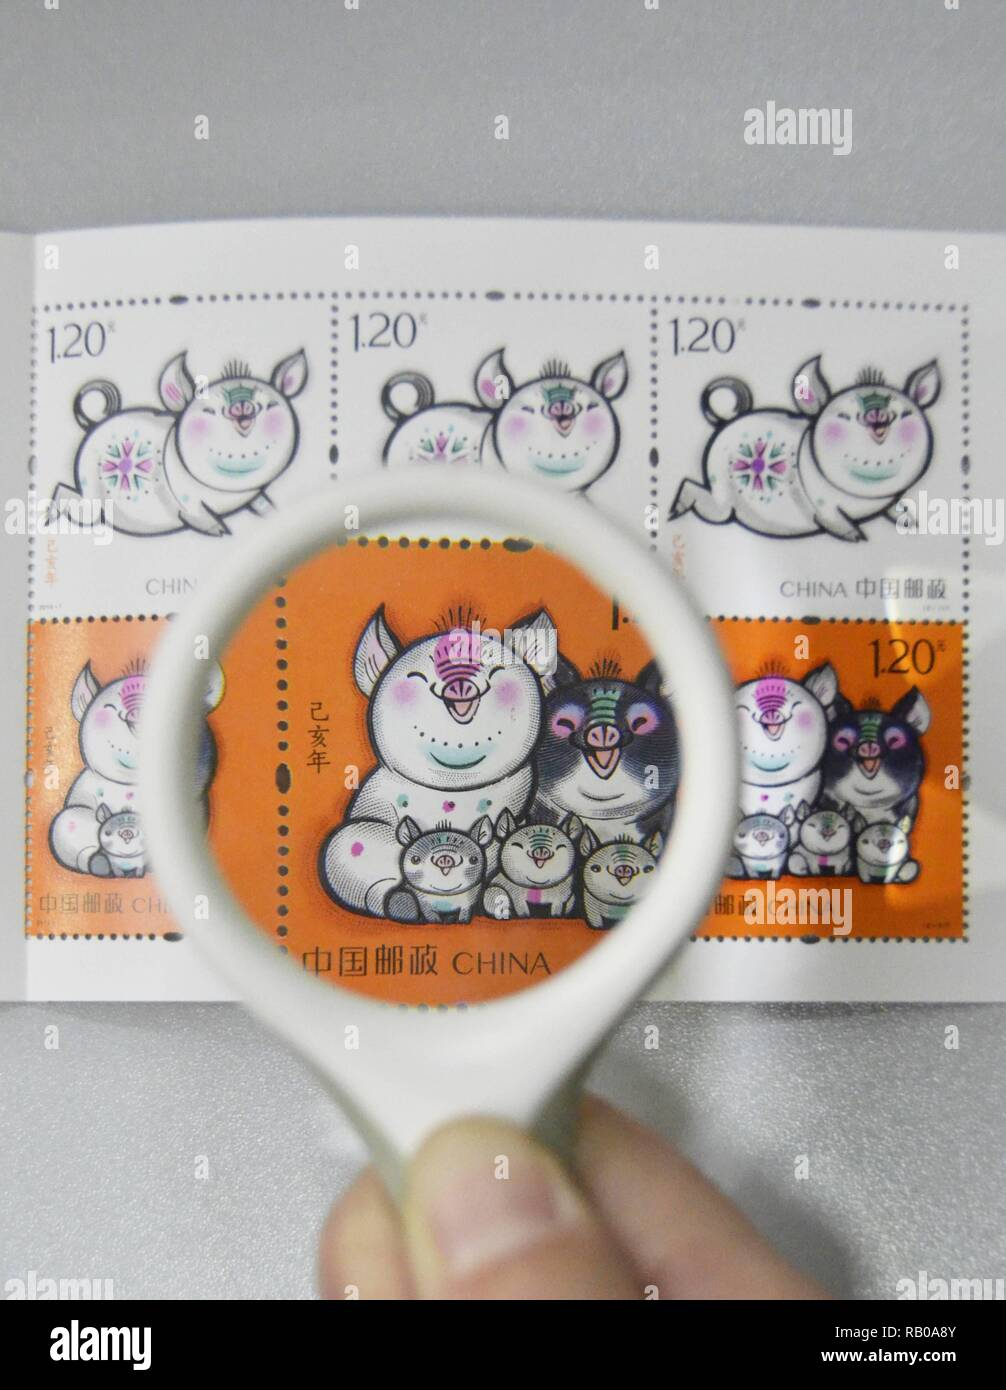 Beijing, China Post on Saturday issued a set of special